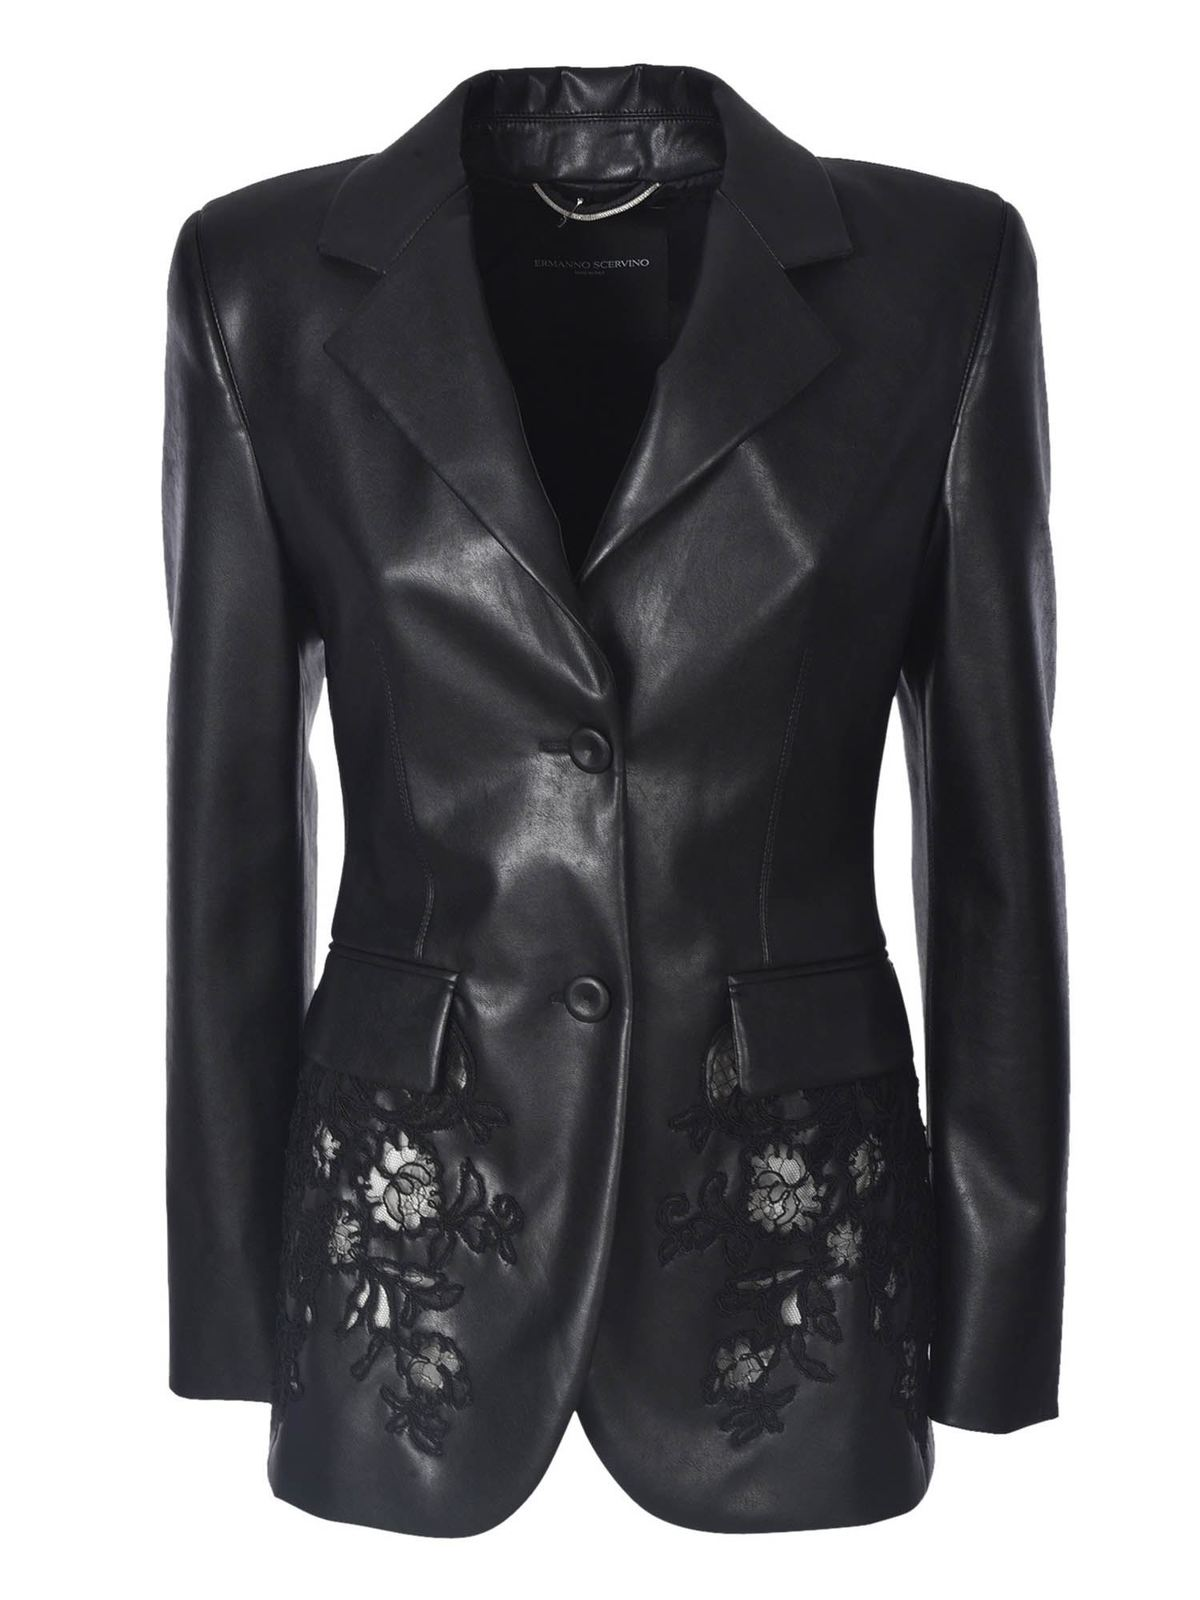 Ermanno Scervino SYNTHETIC LEATHER JACKET WITH EMBROIDERY IN B